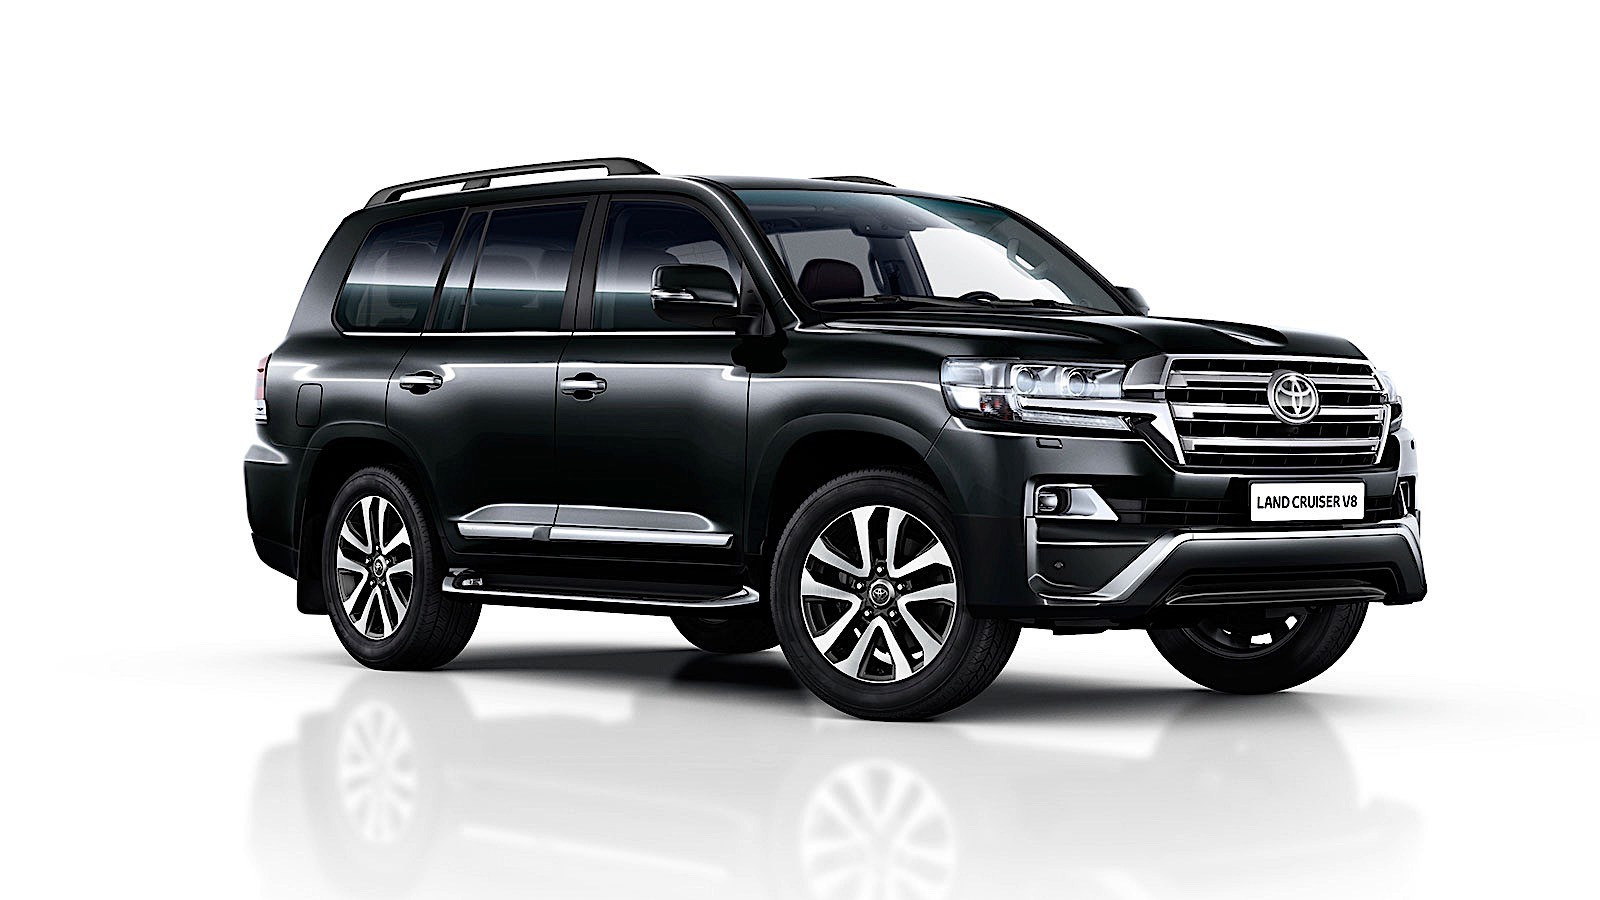 toyota land cruiser 200 v8 specs 2015 2016 2017. Black Bedroom Furniture Sets. Home Design Ideas